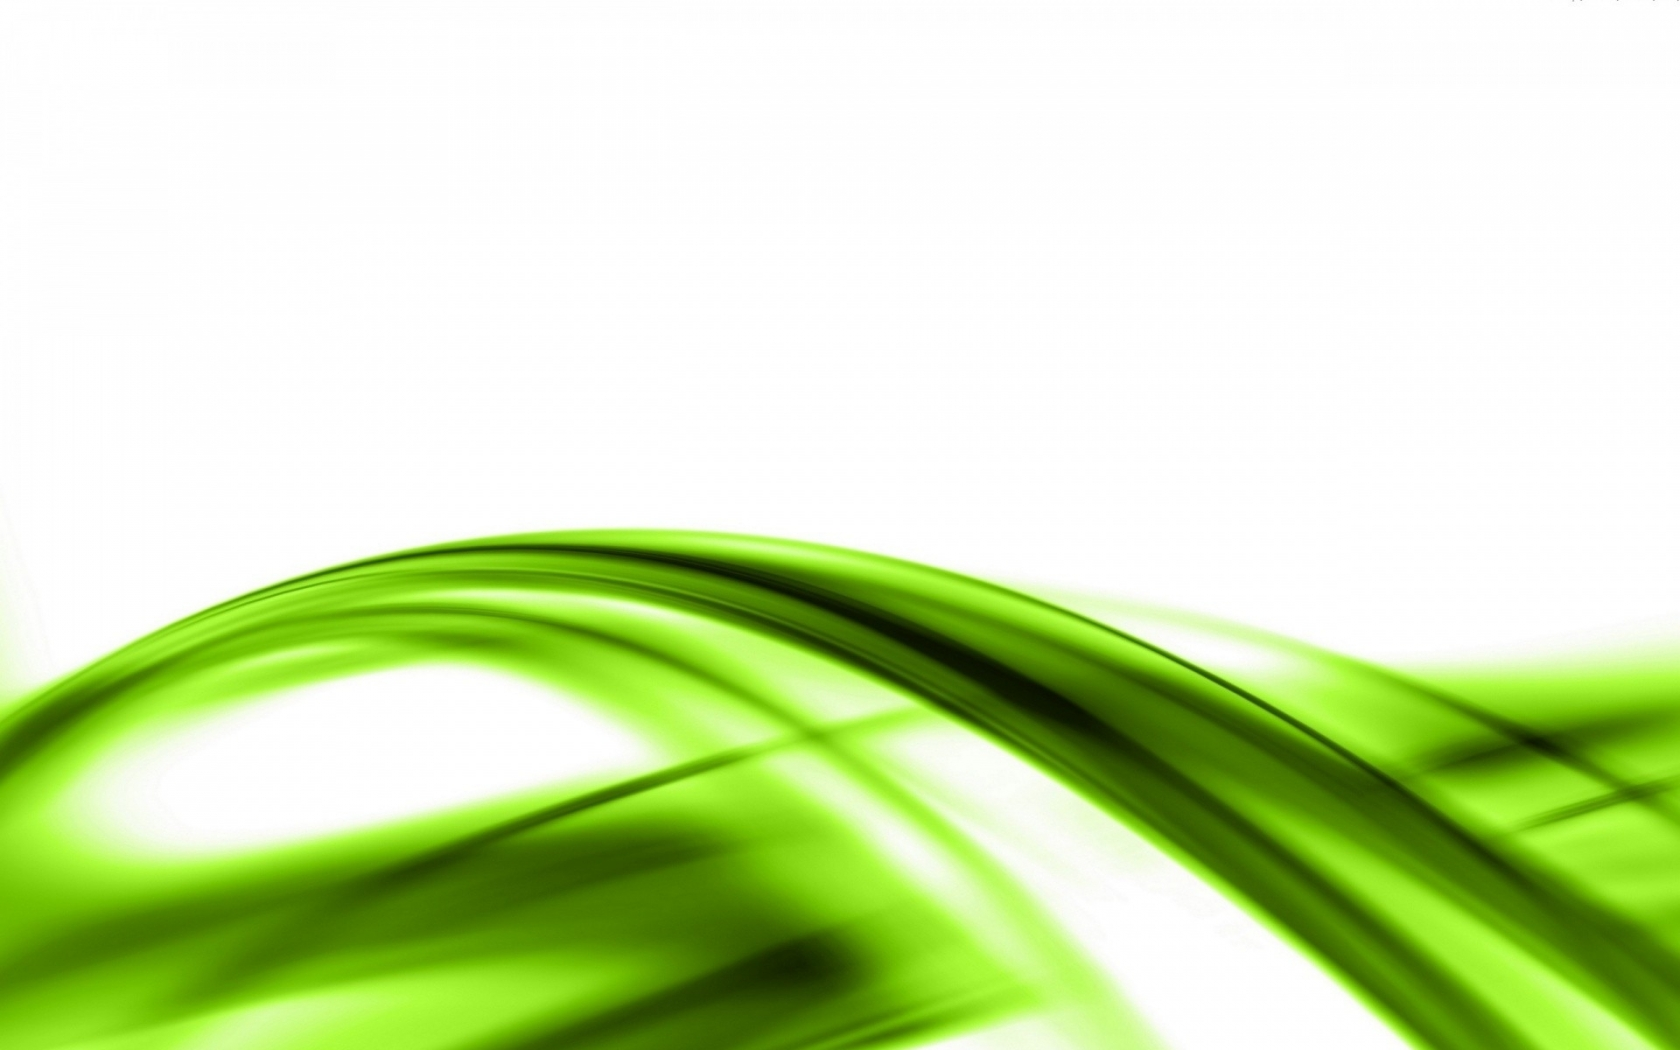 Free Green Green Colorful Abstract Wallpaper Downloads Wallpaper